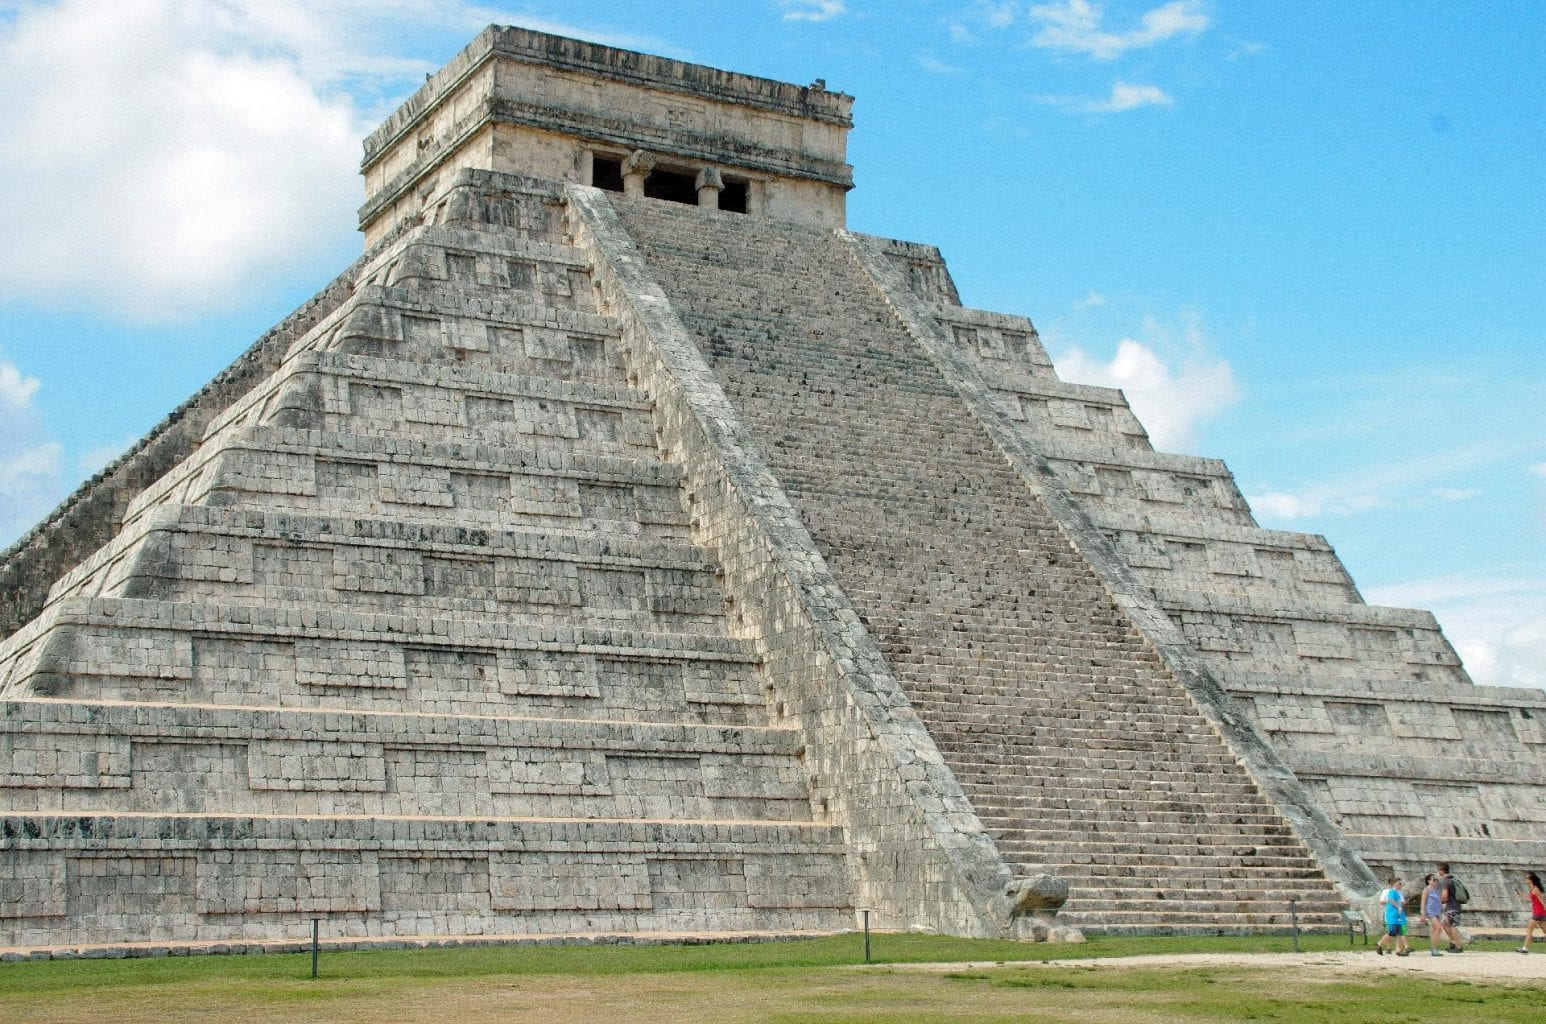 See the three windows at the top of the pyramid of Chichen Itza. Credit: Jumpstory